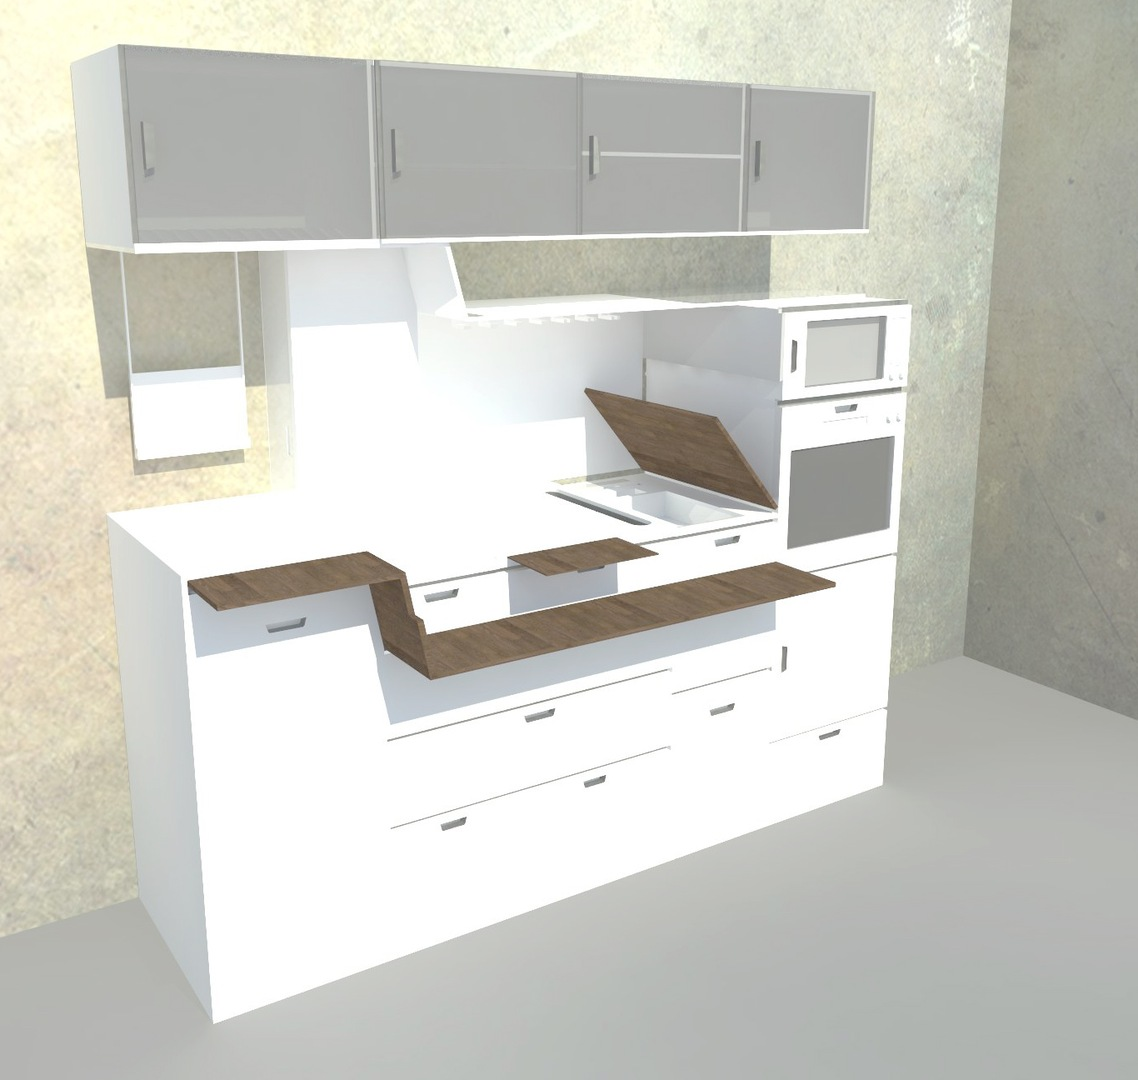 Micro Kitchen the lolo micro kitchen was designed by young russian designers tanya and misha repin their concept stayed away from stereotypical Micro Kitchen Ideas Micro Kitchen By Arkritecture